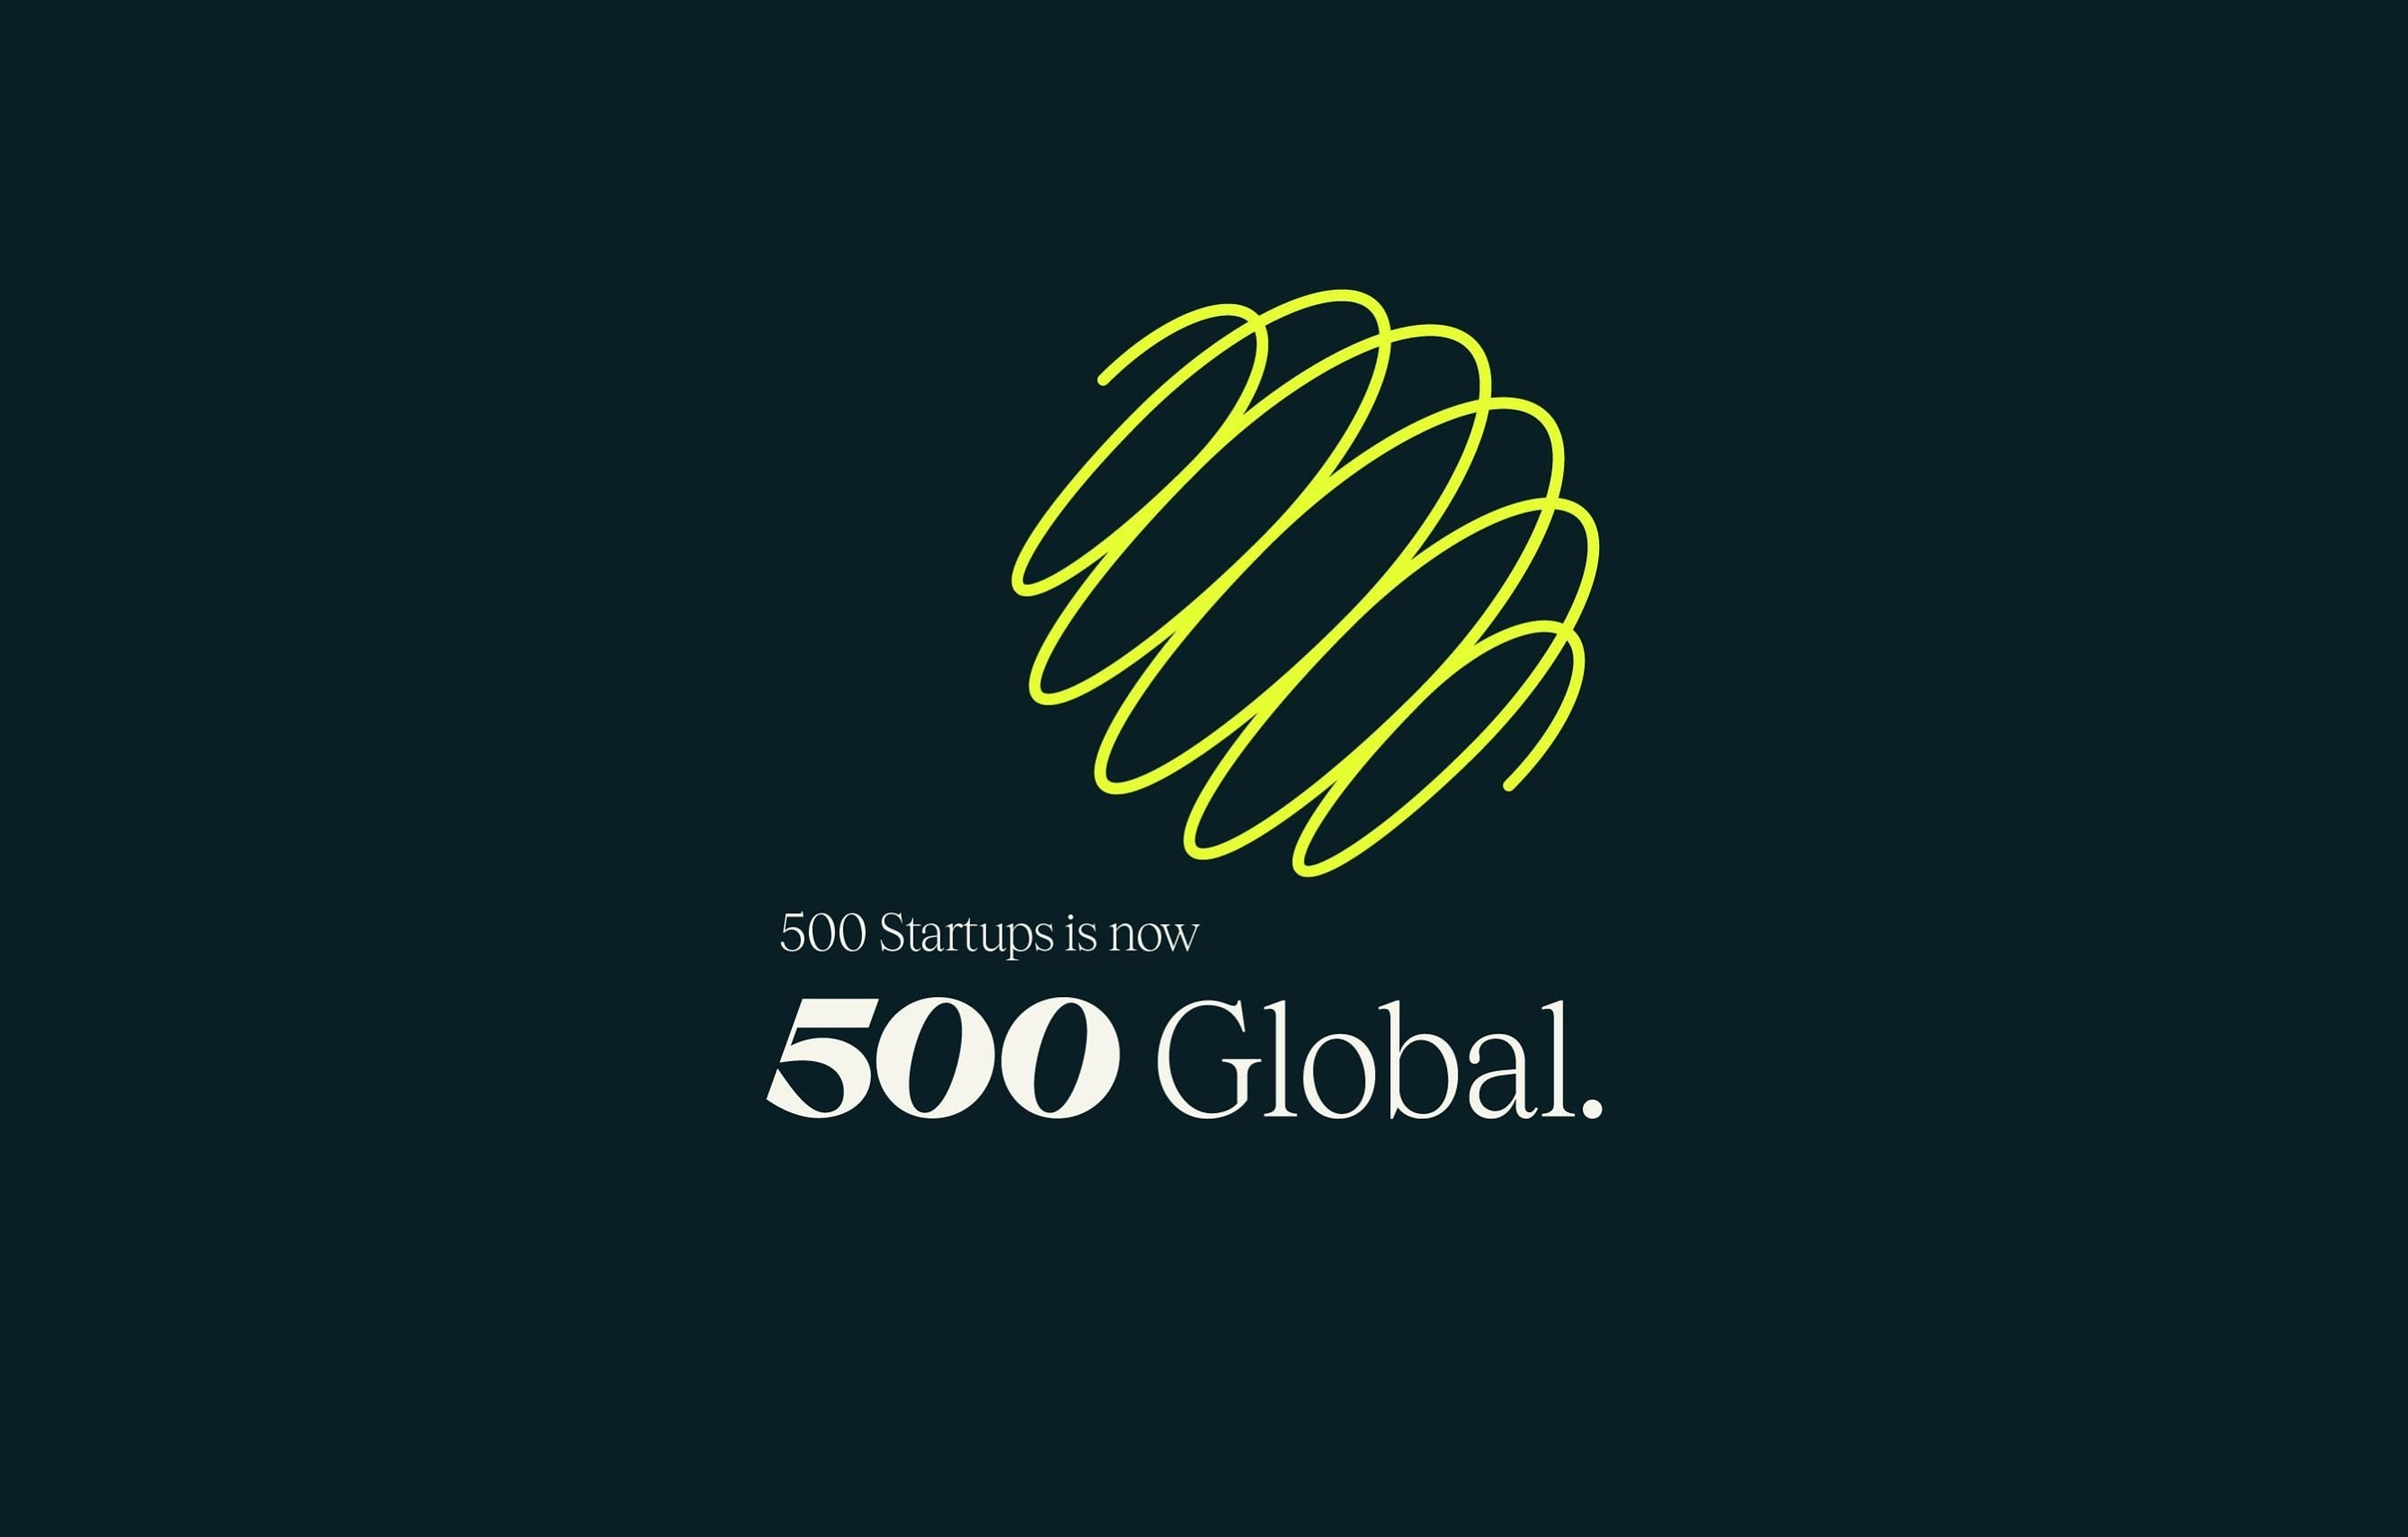 """500 Startups closes its largest fund raise to date, announces rebrand to """"500 Global"""""""